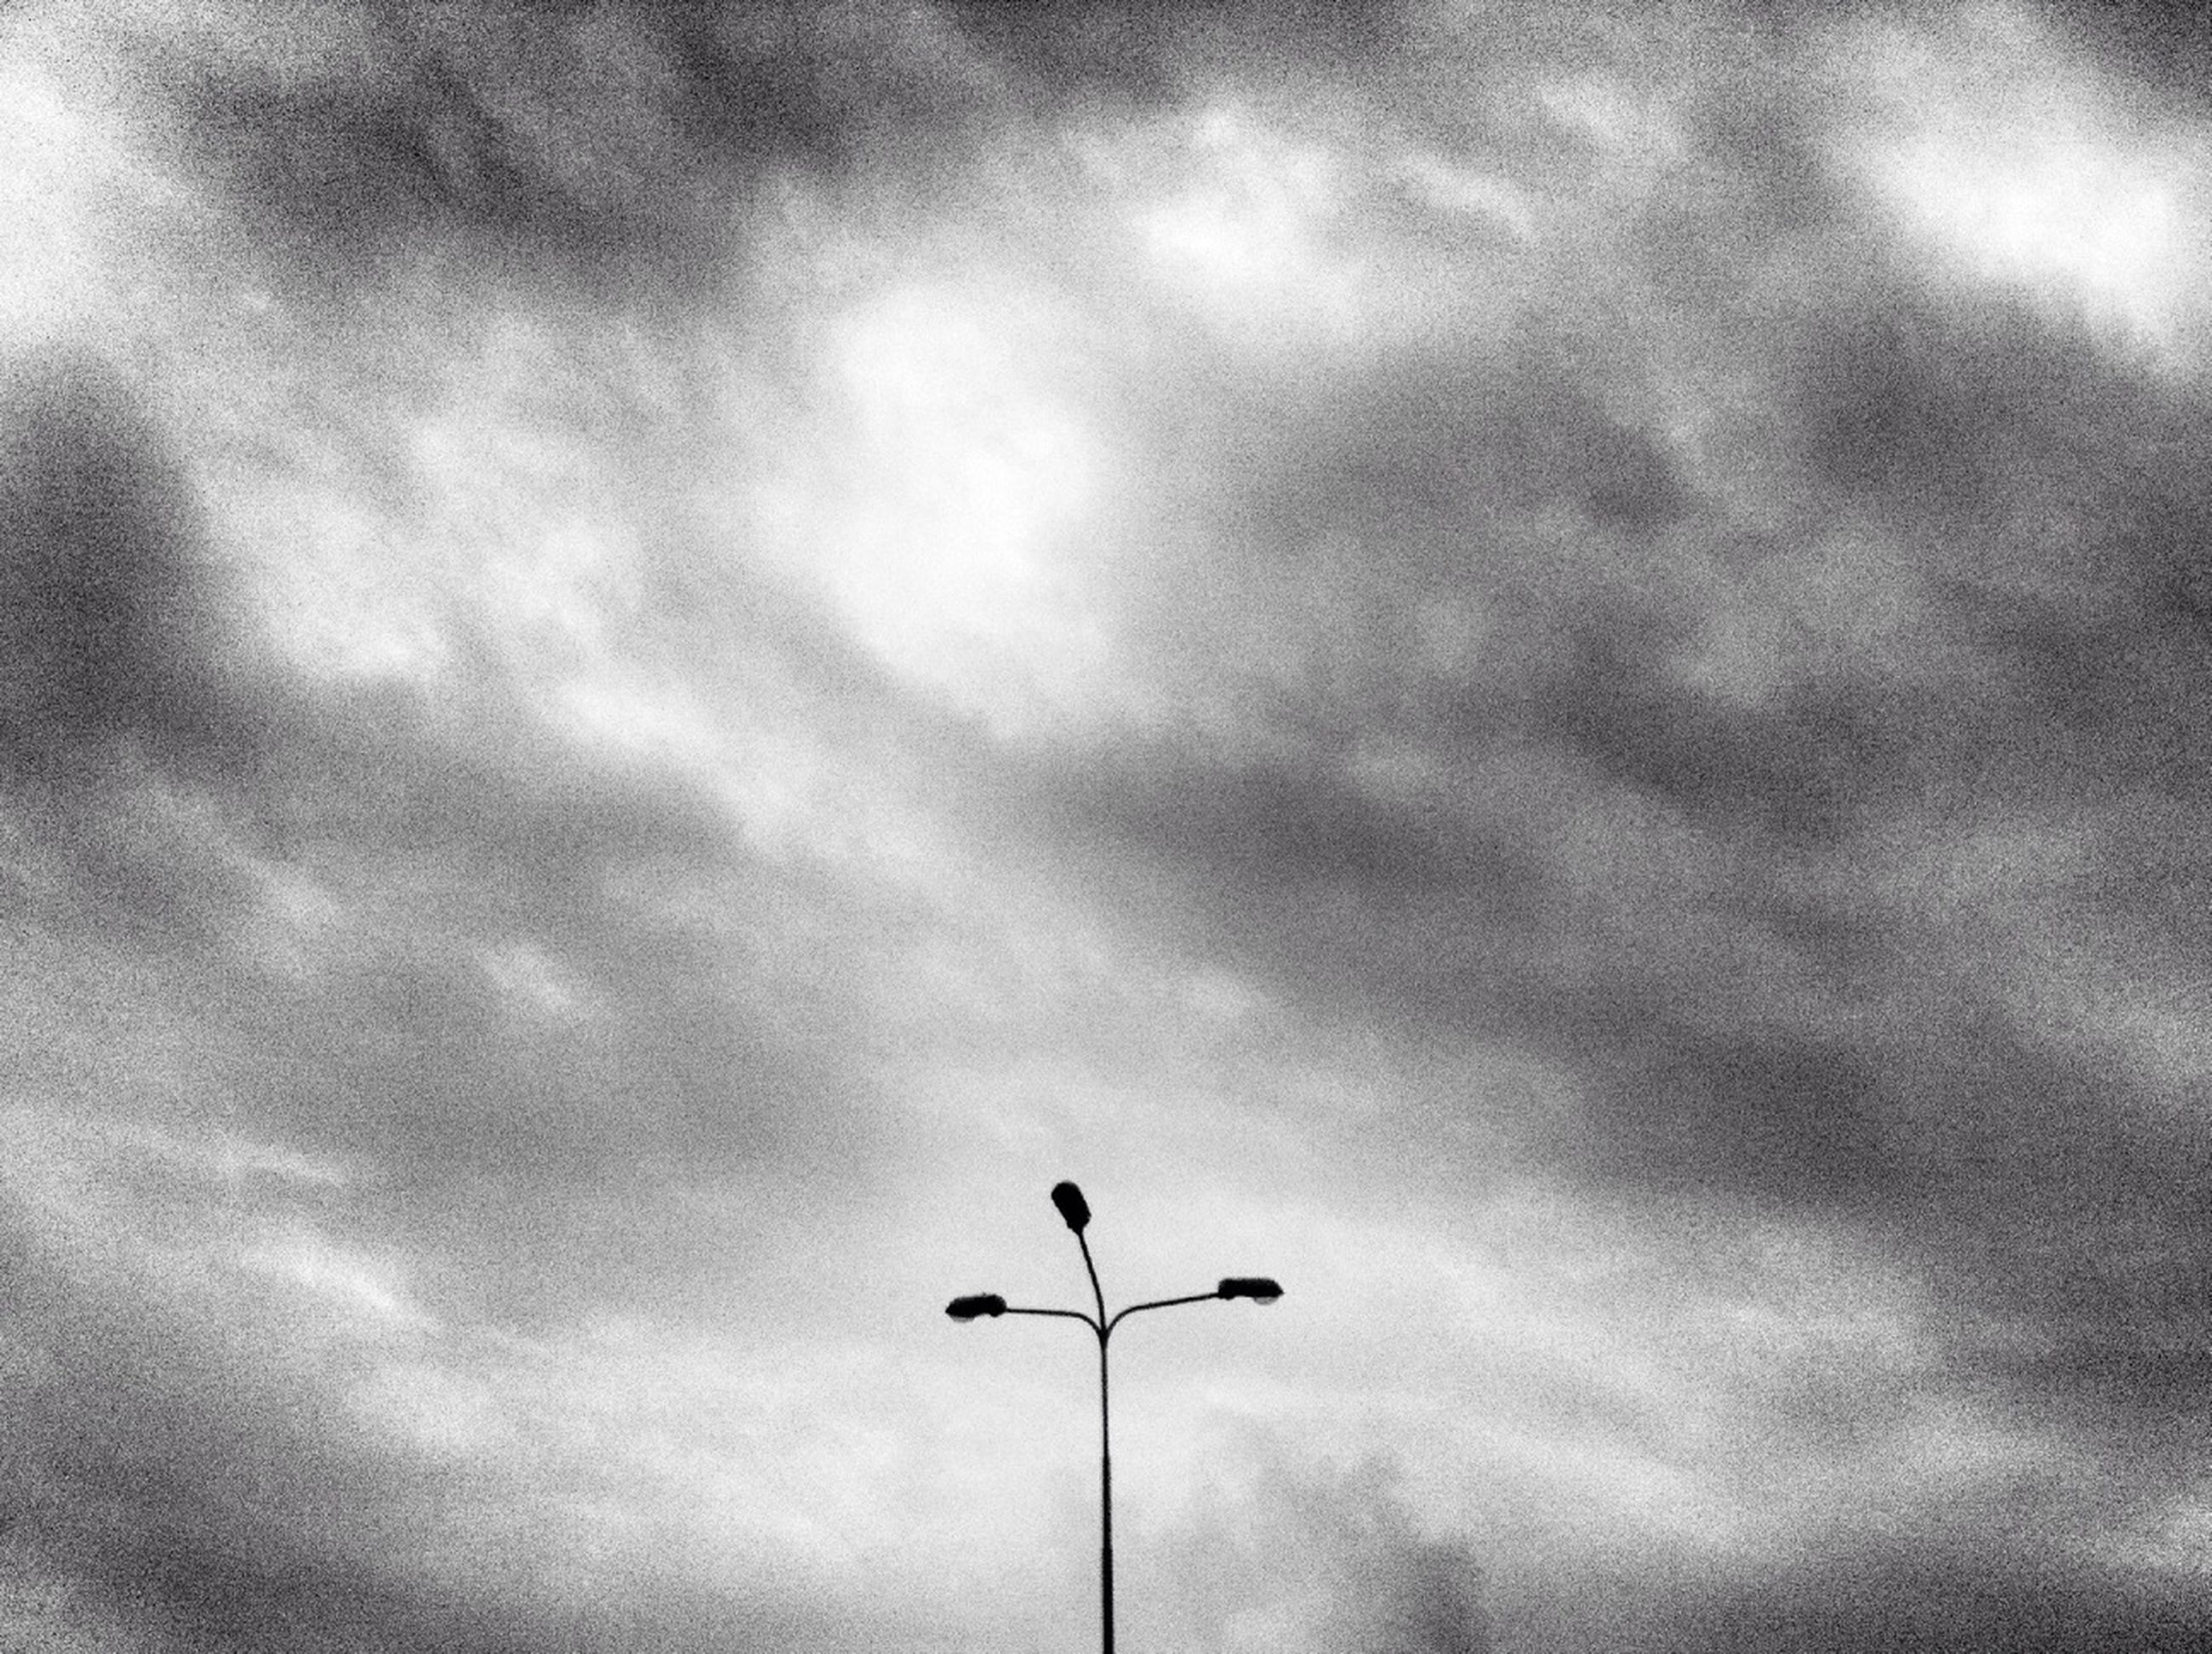 low angle view, sky, street light, cloud - sky, cloudy, lighting equipment, silhouette, cloud, overcast, high section, outdoors, nature, weather, pole, no people, dusk, day, electricity, tranquility, beauty in nature